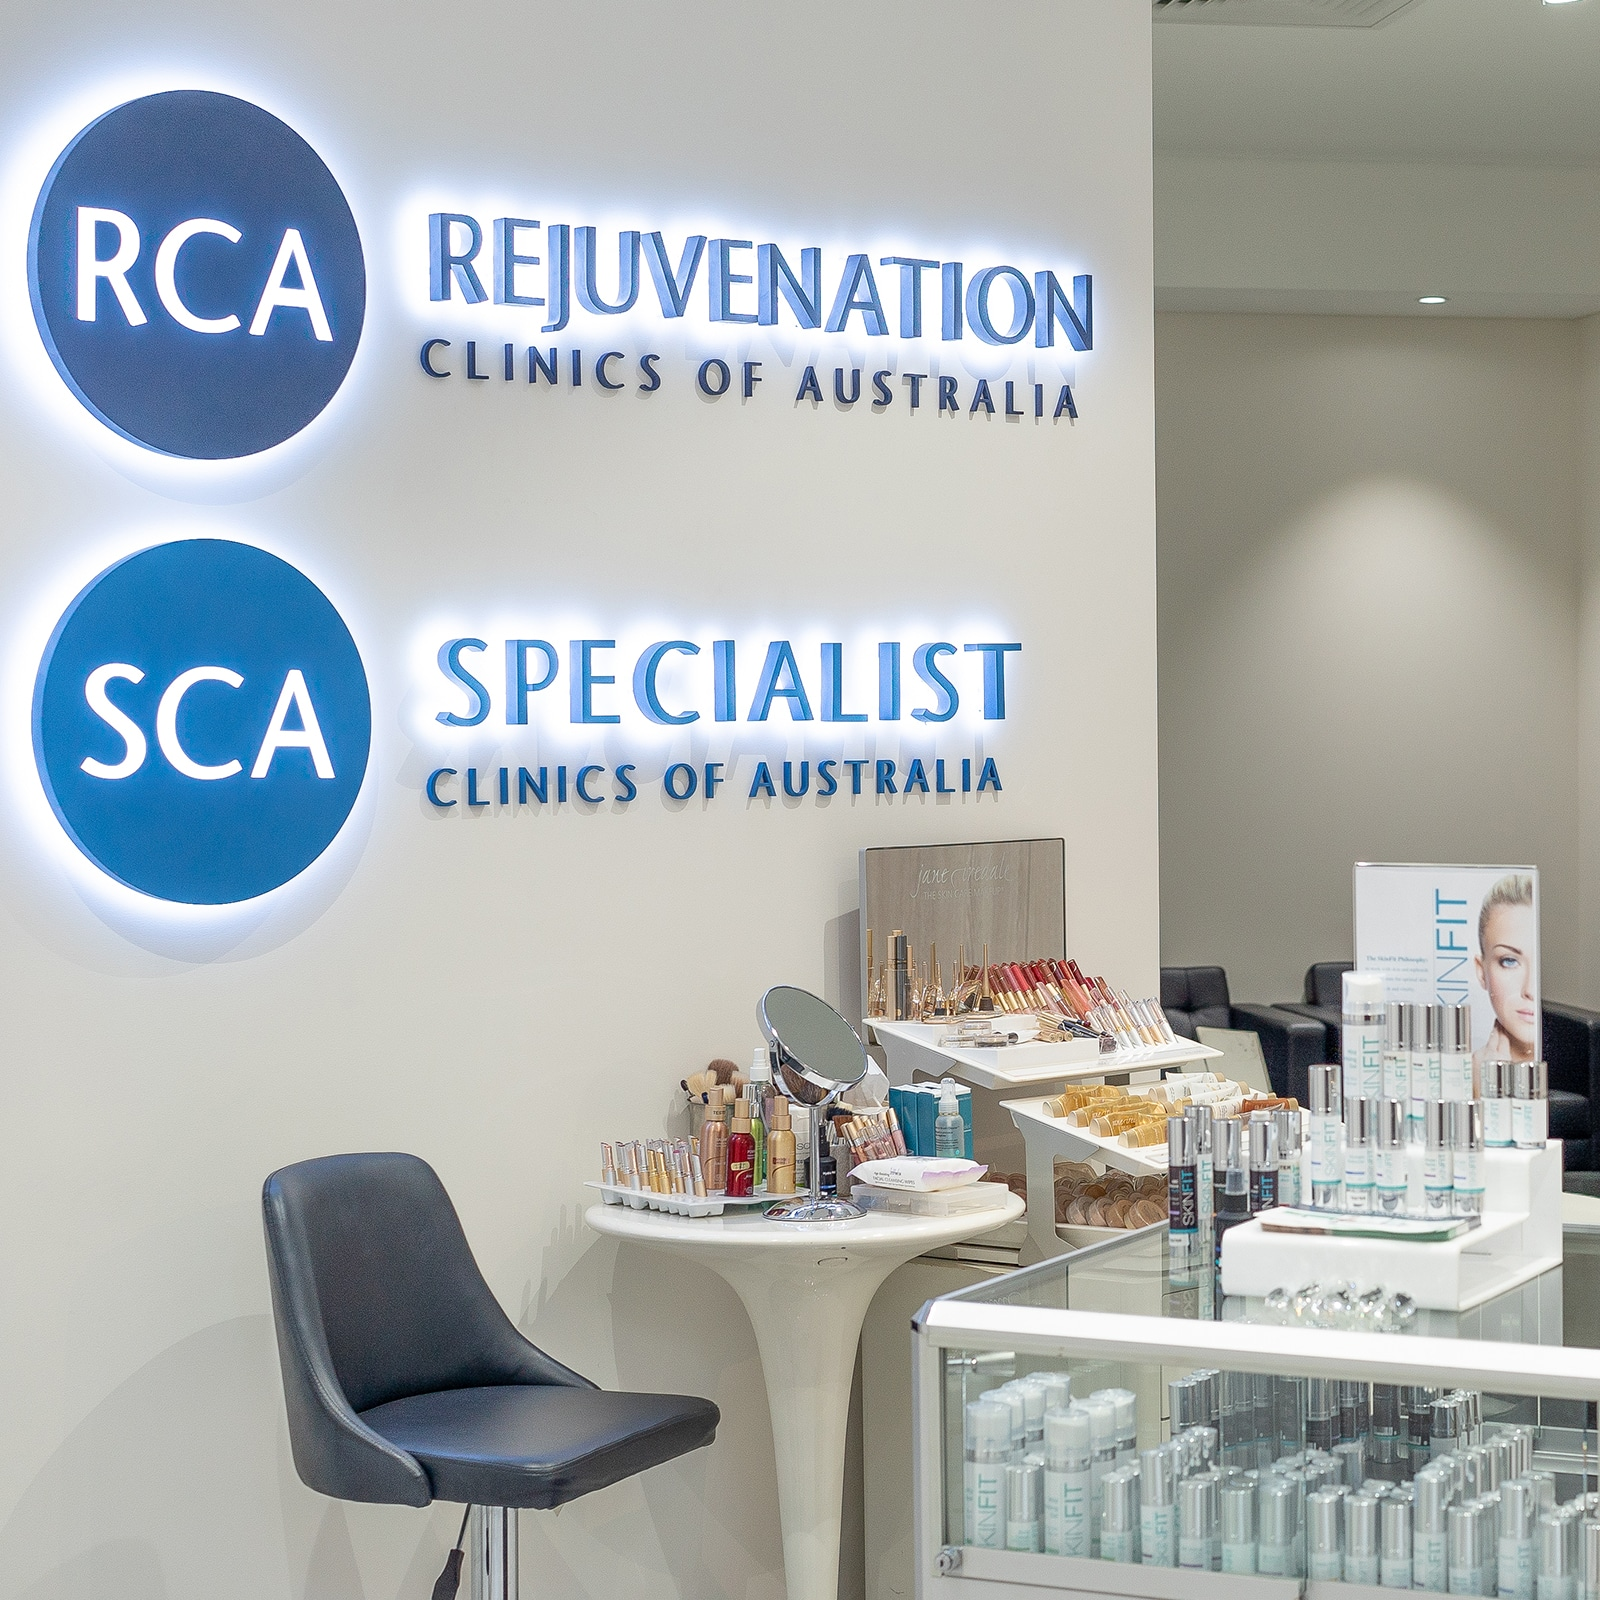 sydney cbd rejuvenation clinic